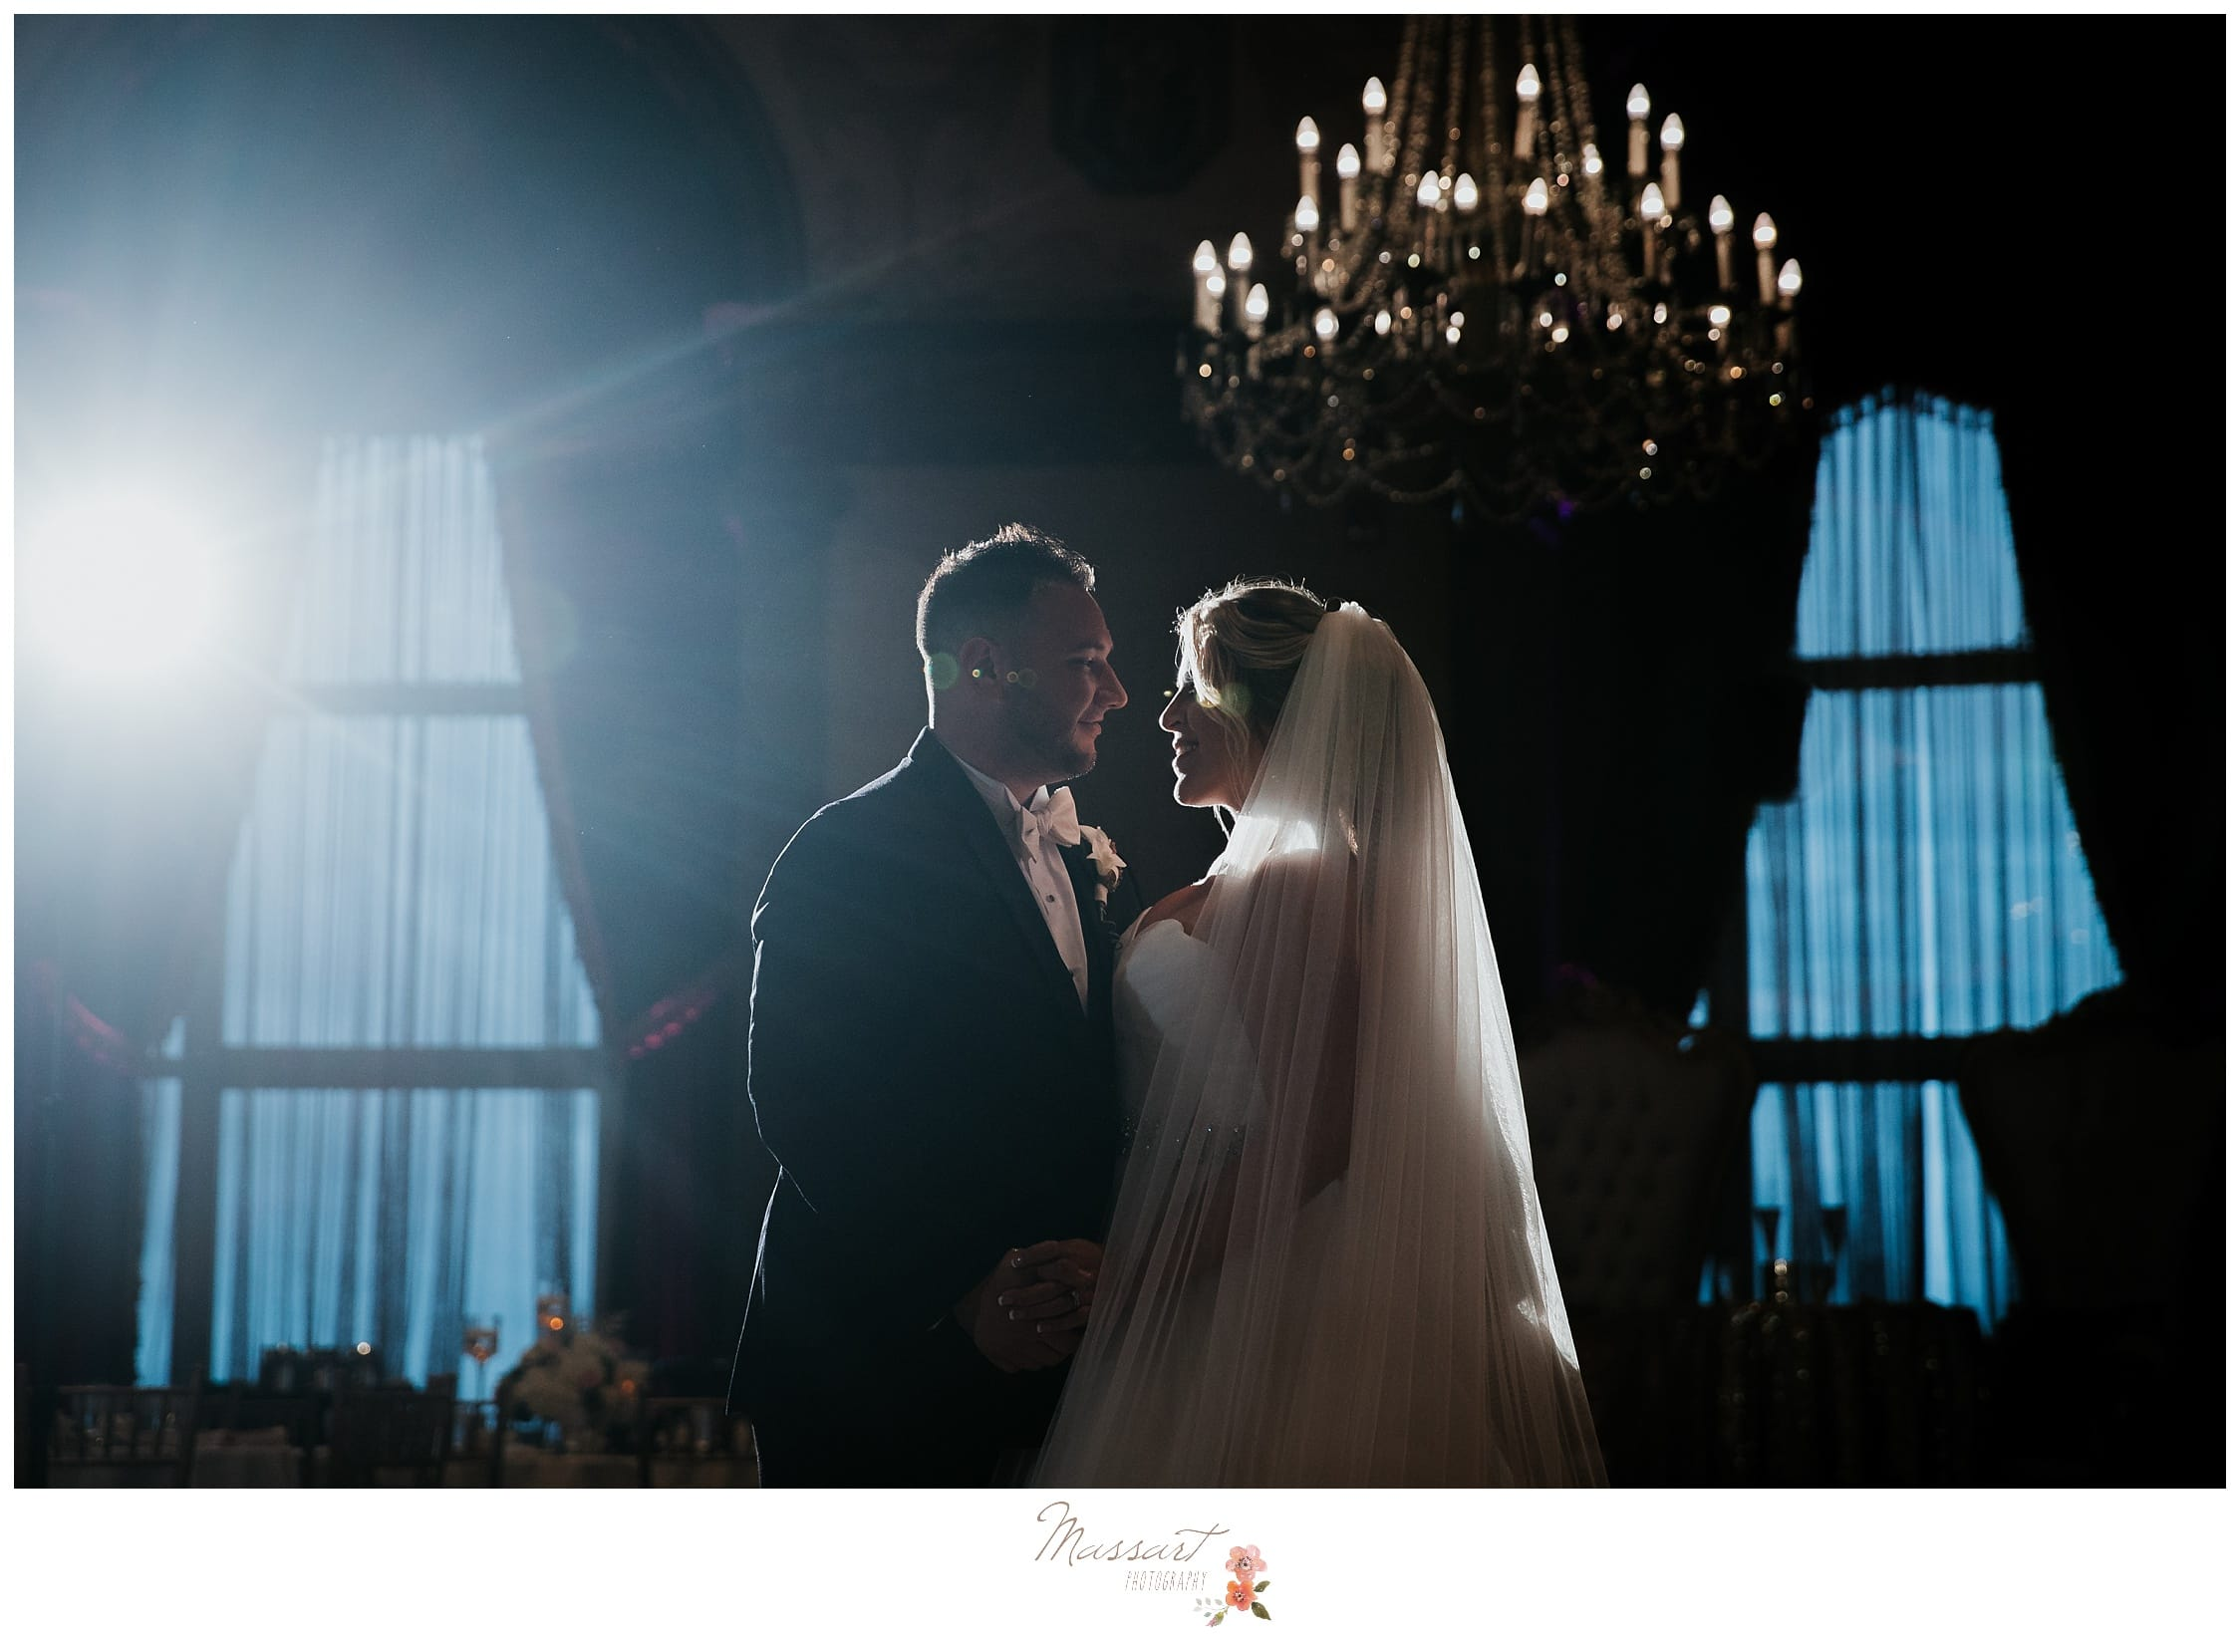 The newlywed's romantic first dance photographed by Massart Photography RI